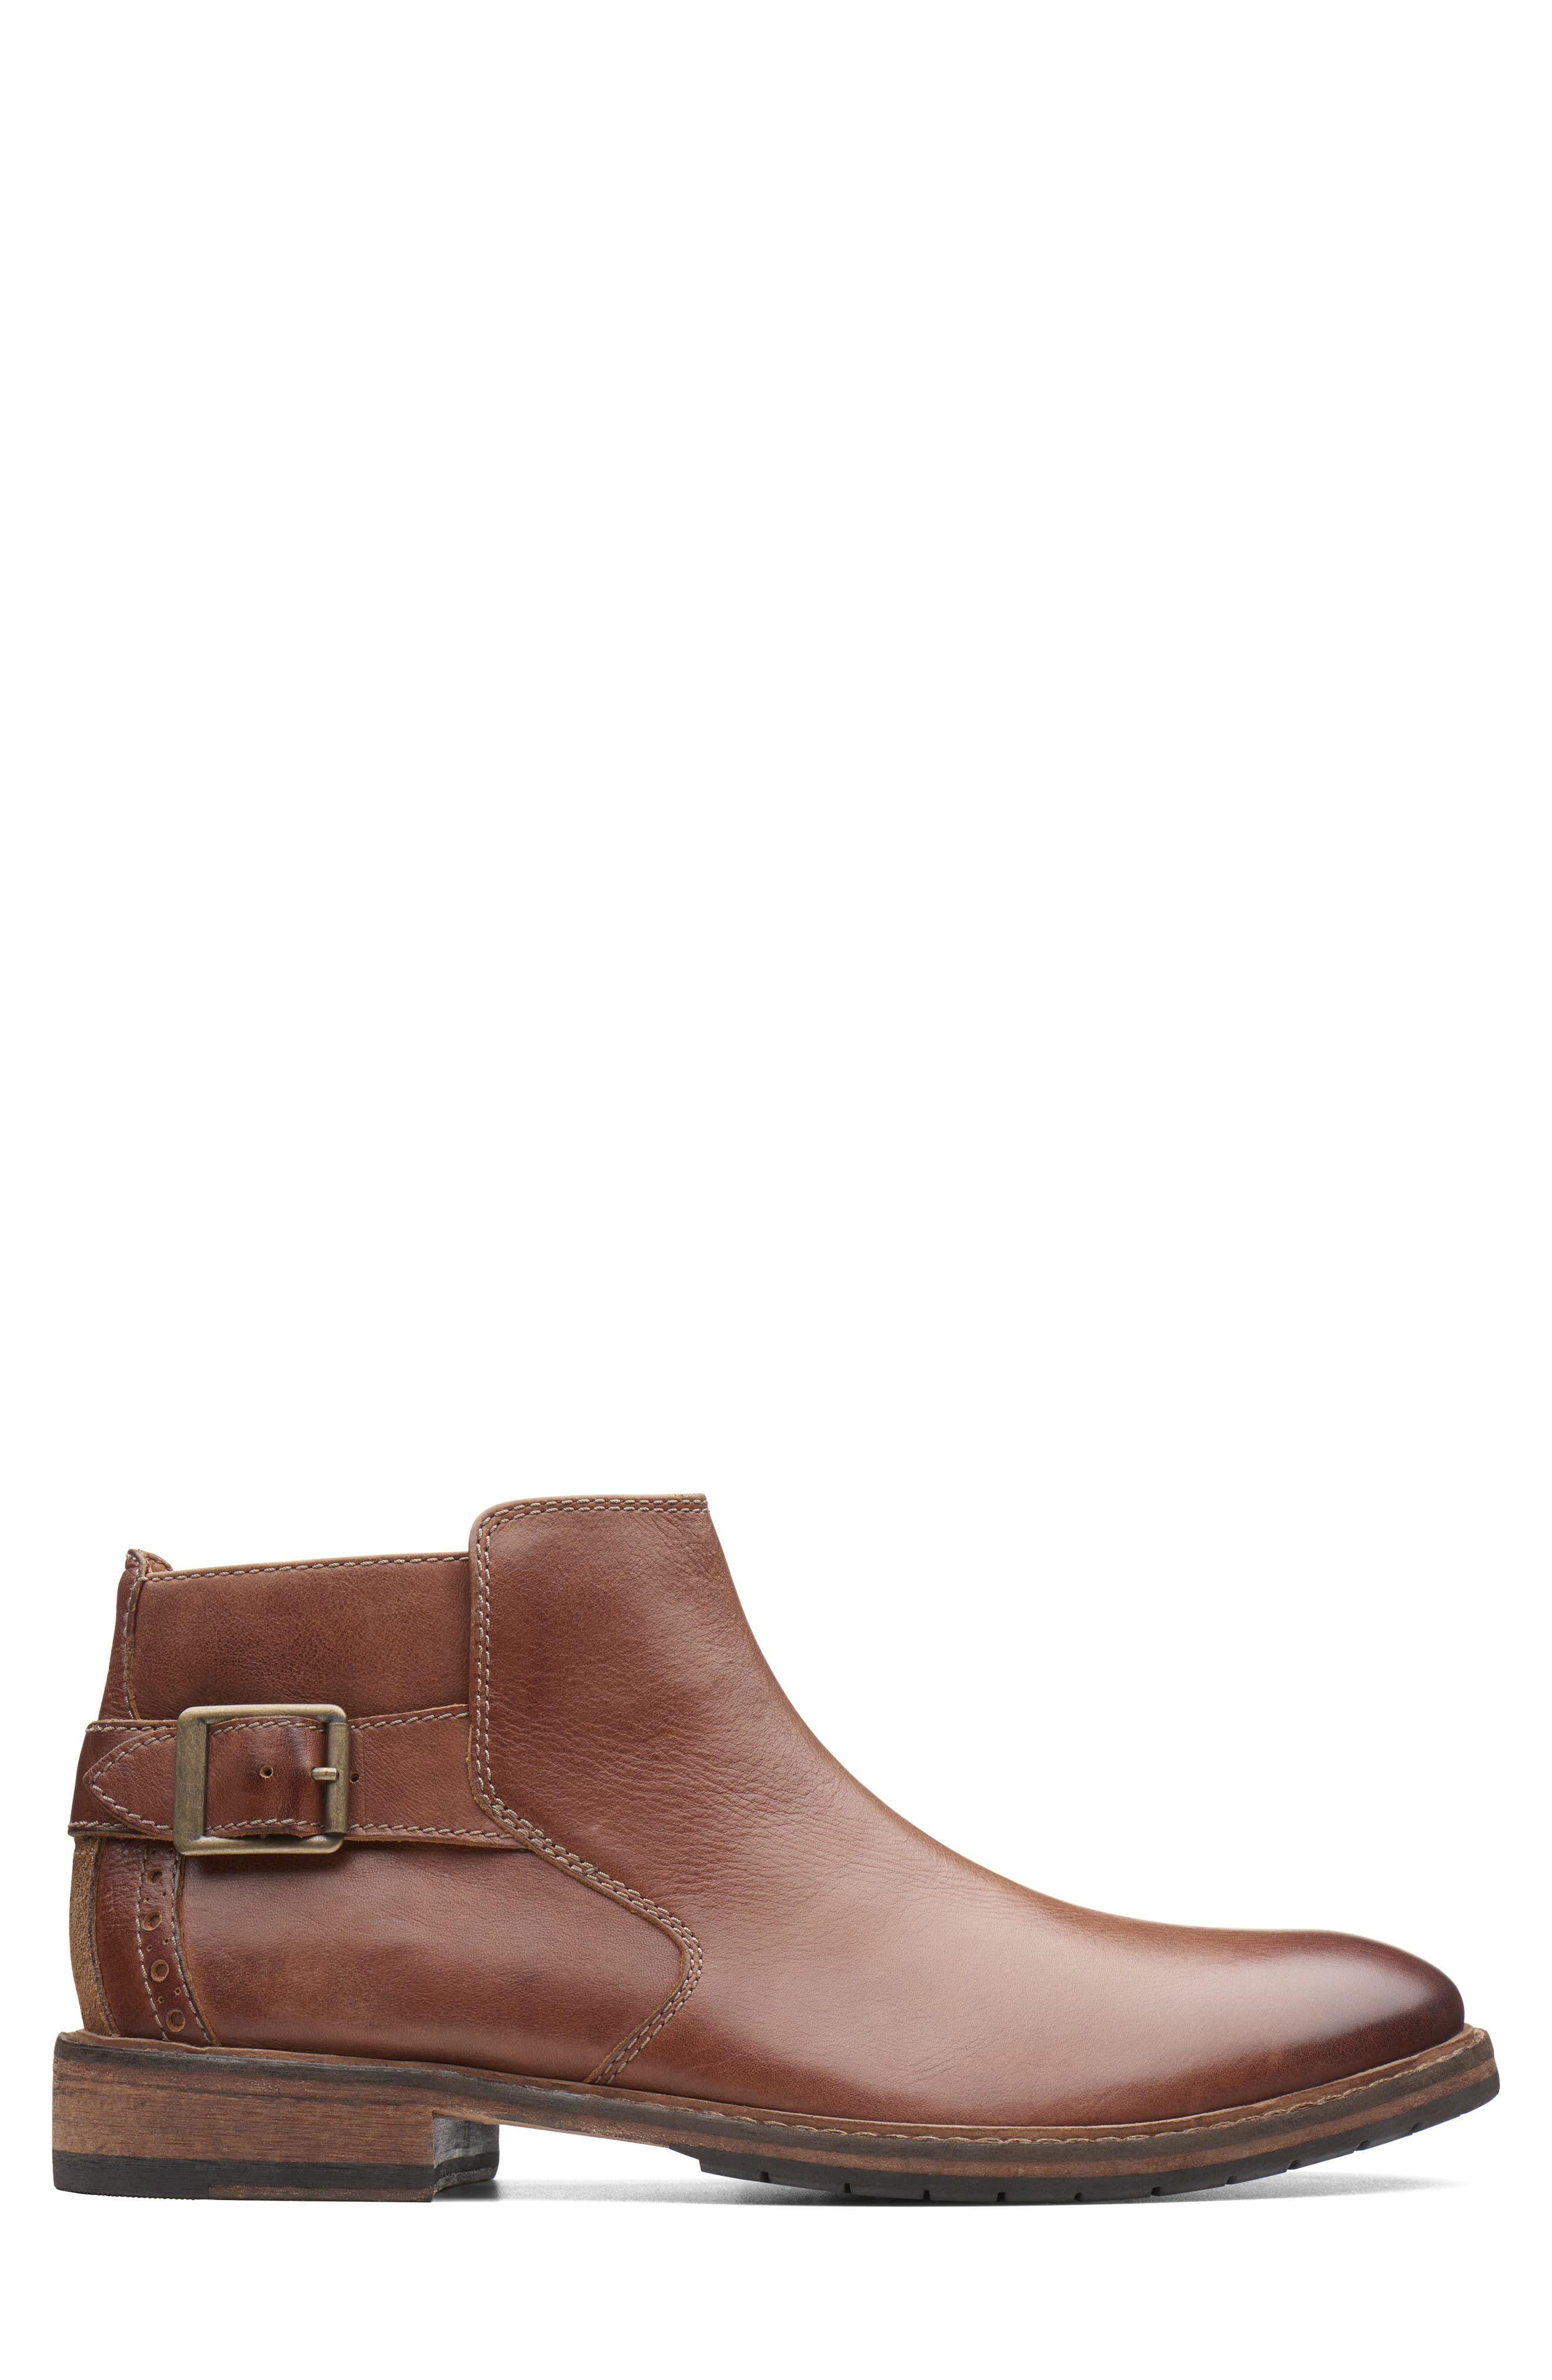 Clarkdale Remi Ankle Boot,                             Alternate thumbnail 2, color,                             DARK TAN LEATHER